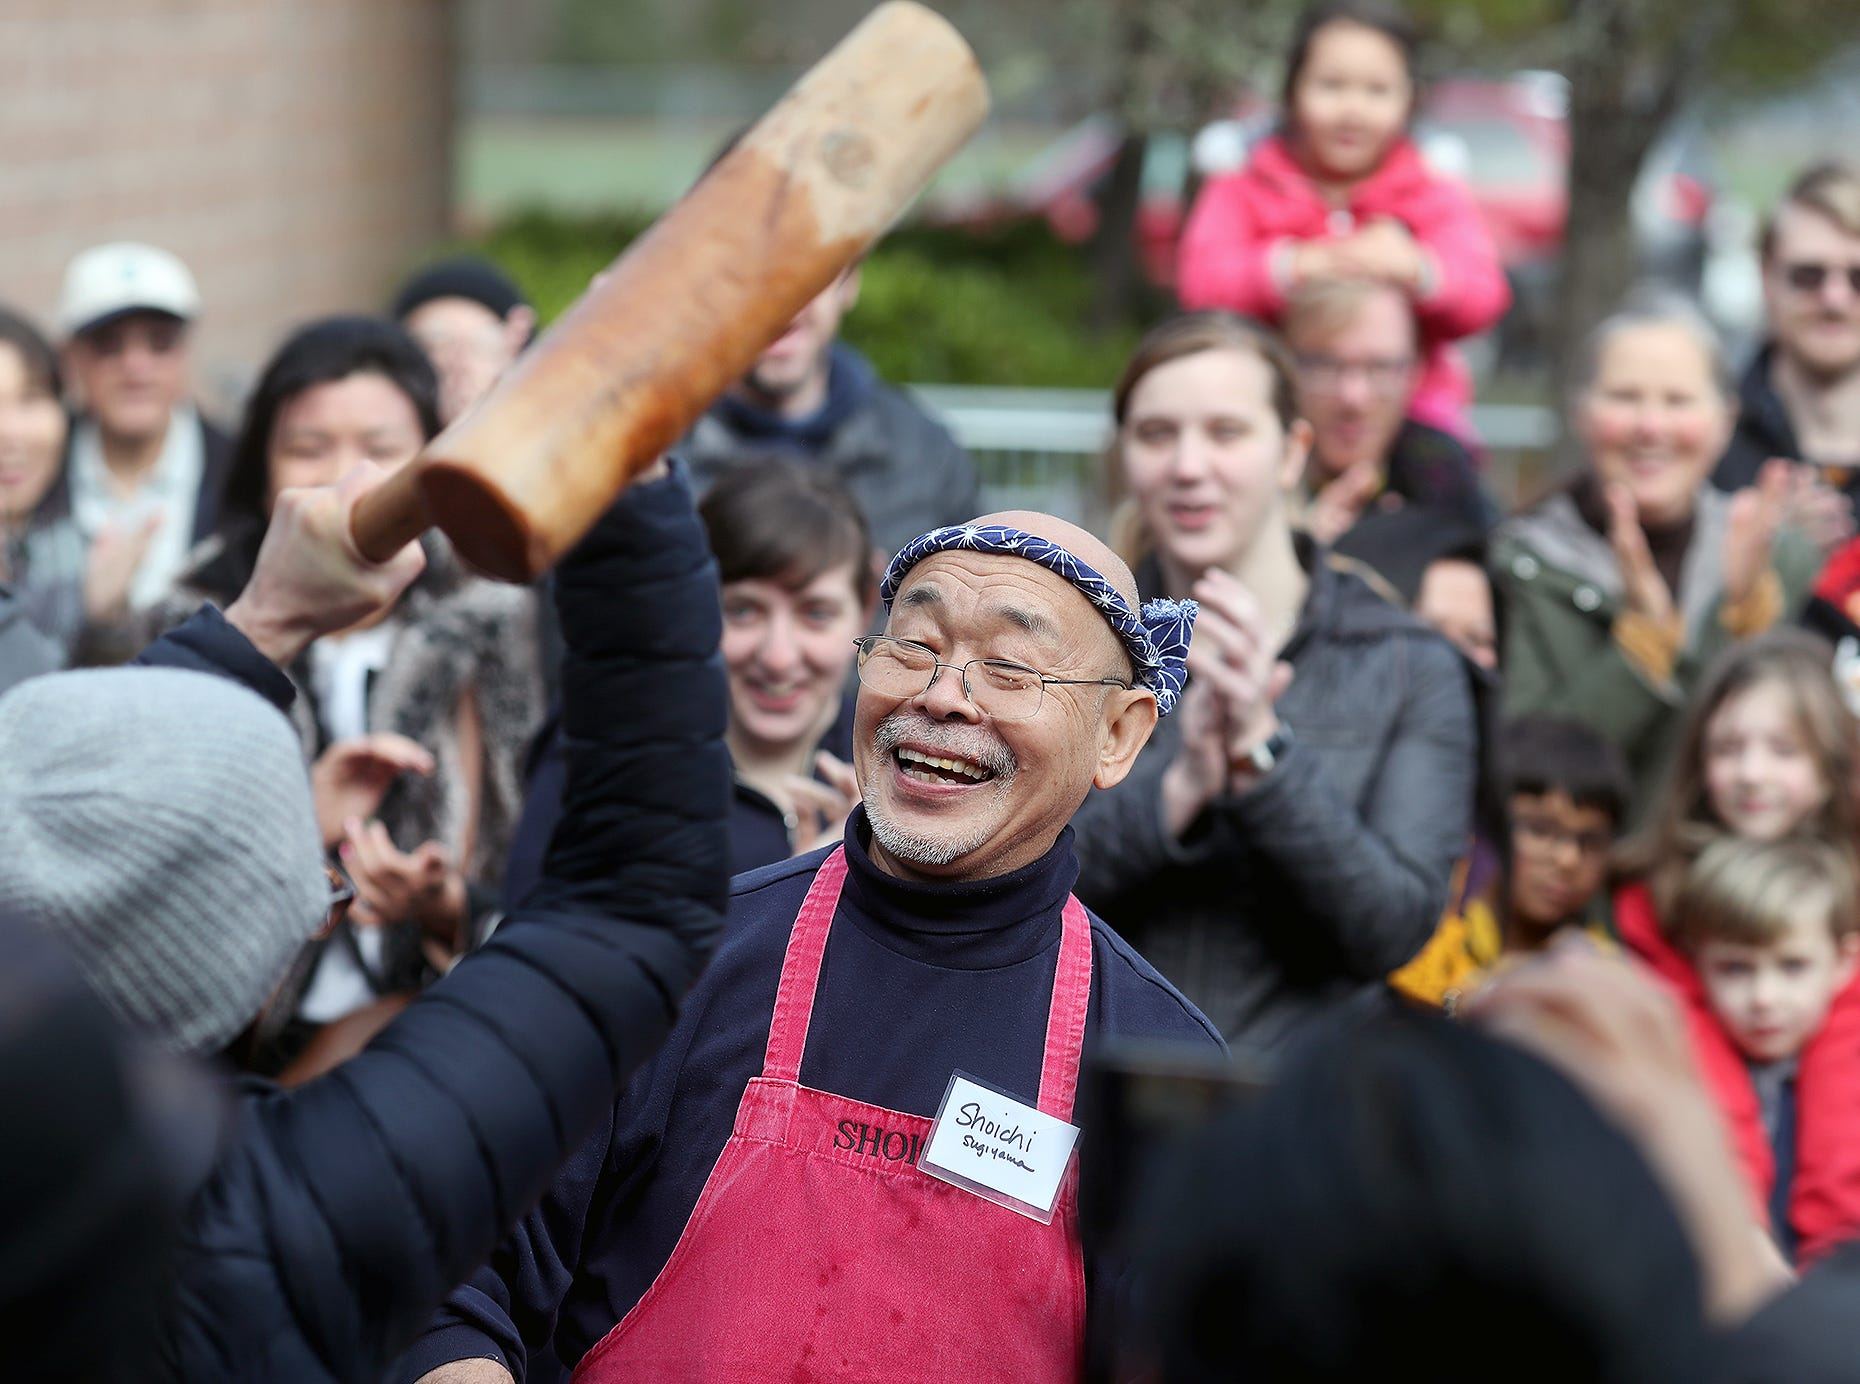 The 30th anniversary of Bainbridge Island's Japanese-American Mochi Tsuki celebration was held at an new location at the Woodward Middle School on Saturday, January, 5, 2019. Mochi Tsuki is a traditional Japanese New Year's tradition of steaming rice and pounding it into a rice cake. Master mochi maker Shoichi Sugiyama, center, makes jokes as a volunteer lifts the heavy mallet to pound rice.